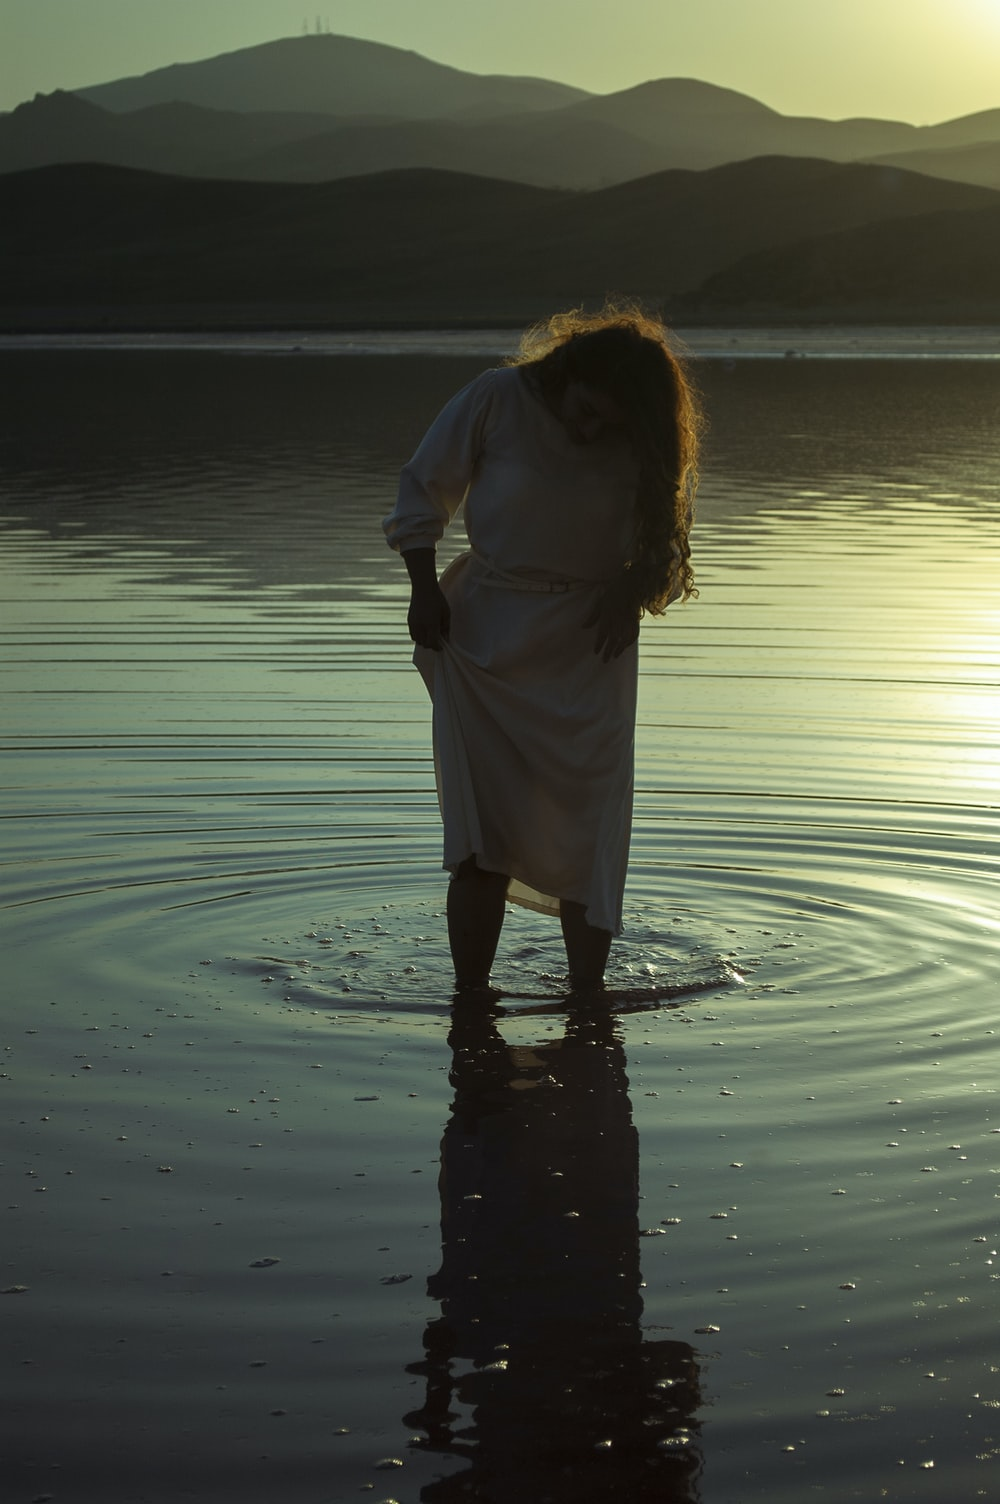 woman in white dress standing on water during daytime